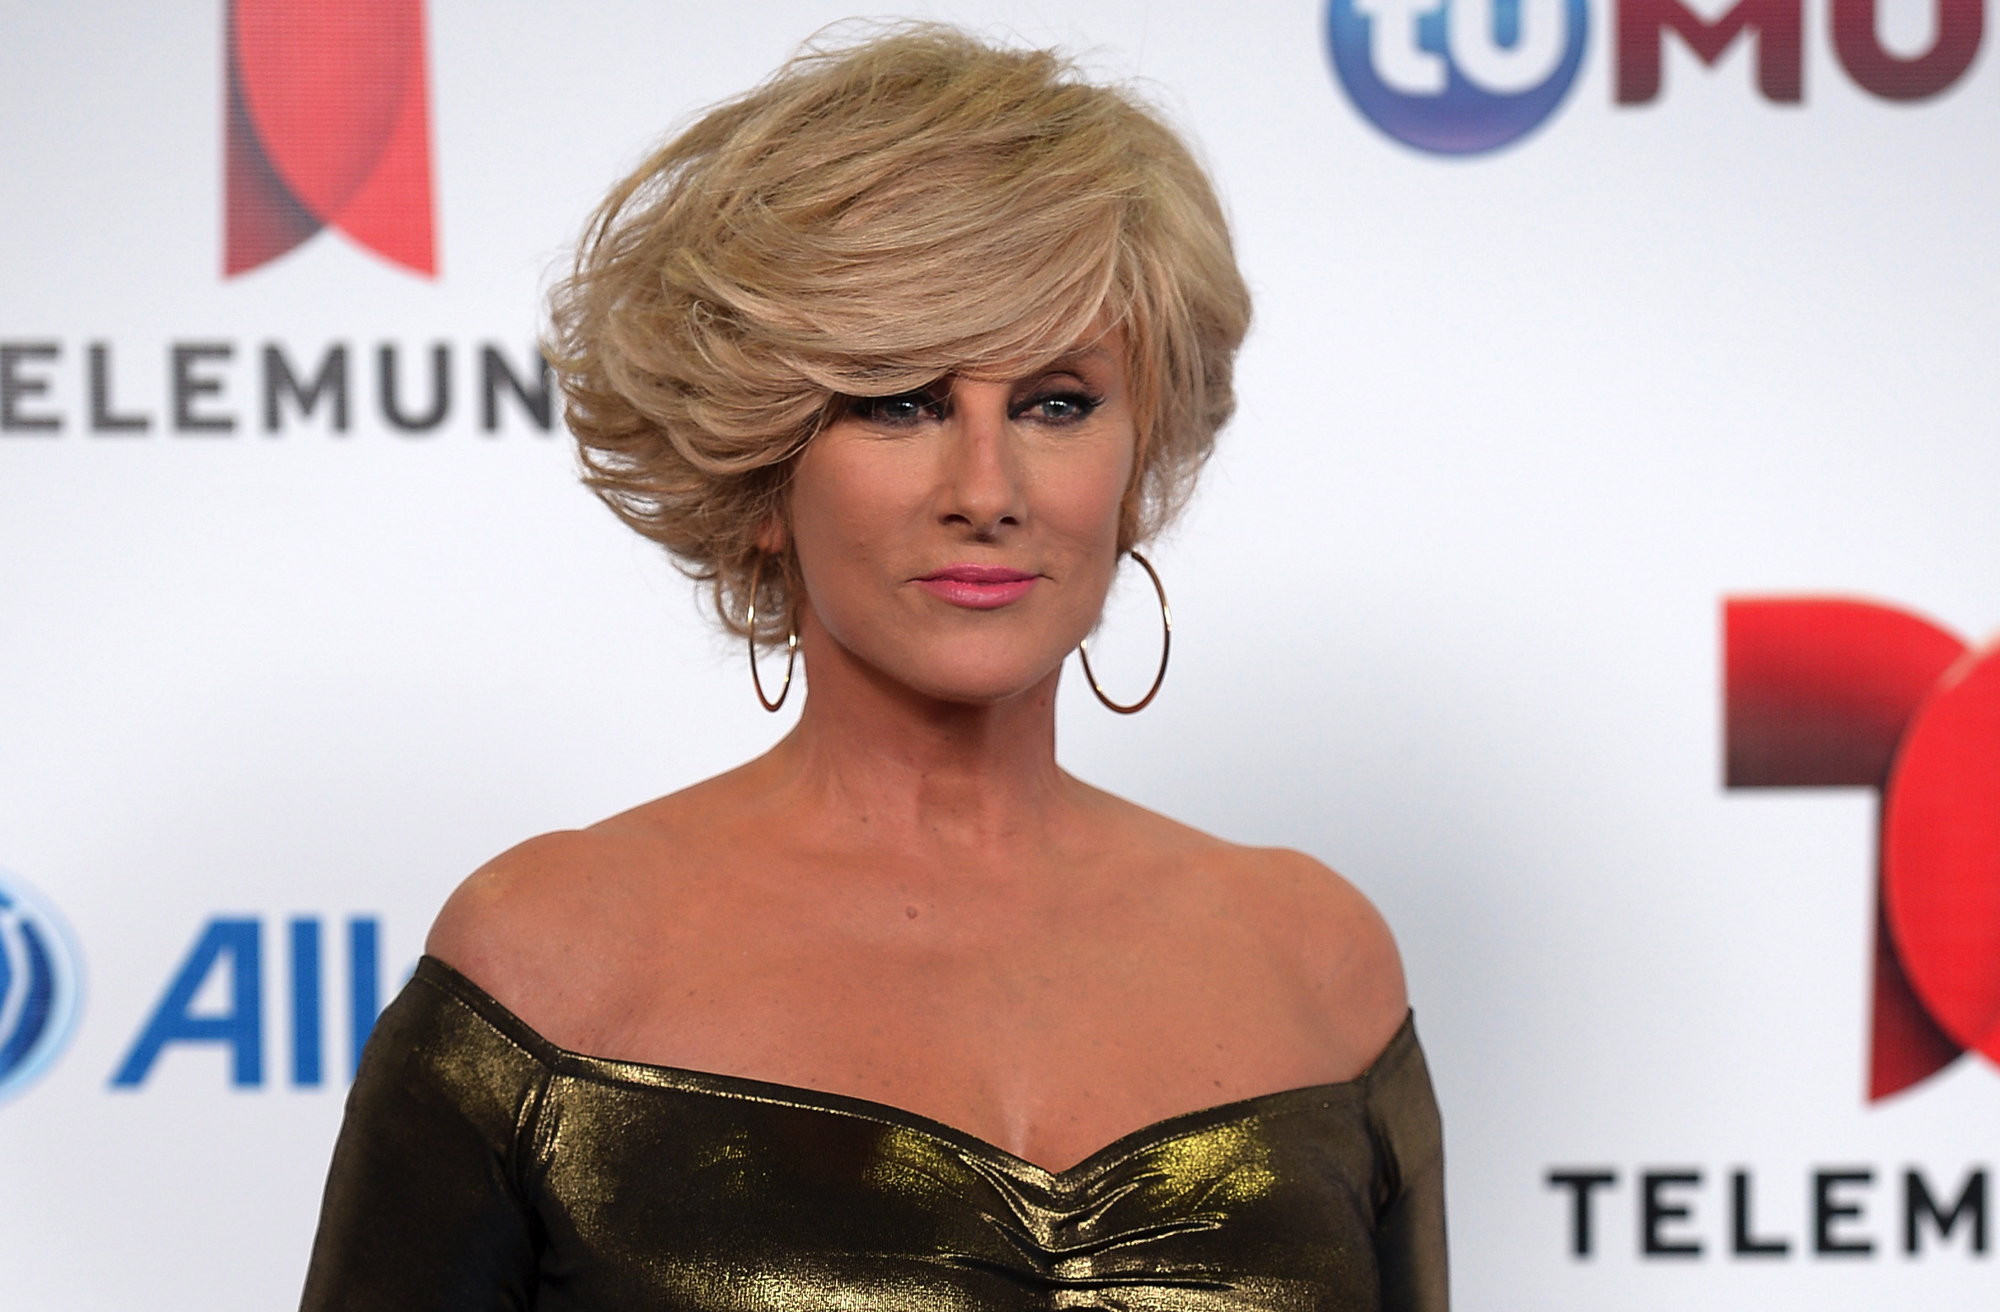 Christian Bach Nationality, Ethnicity, and Cause of Death